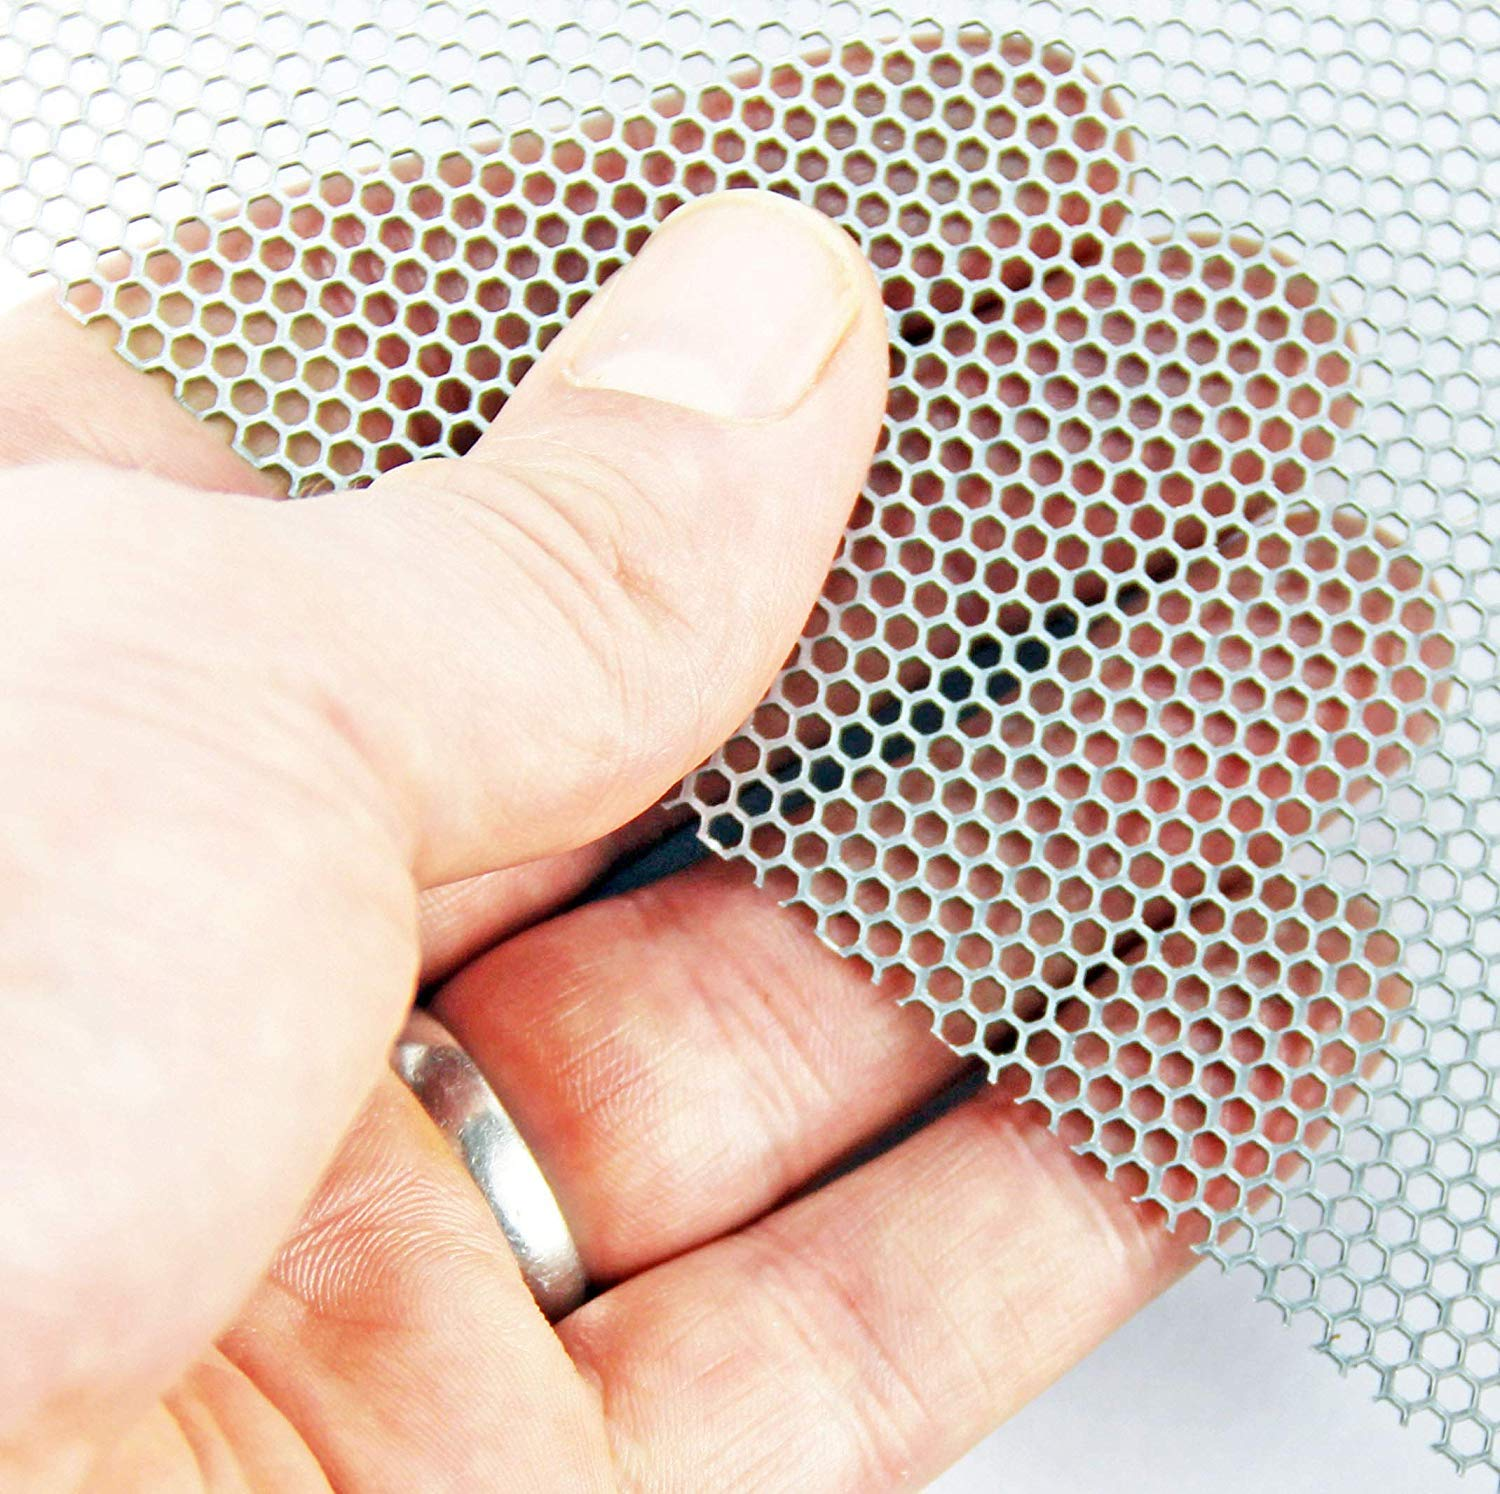 2mm Hexagonal Mild Steel Perforated Sheet (2mm Hole x 2.5mm Pitch x 1mm Thick) - A3 x 3 The Mesh Company